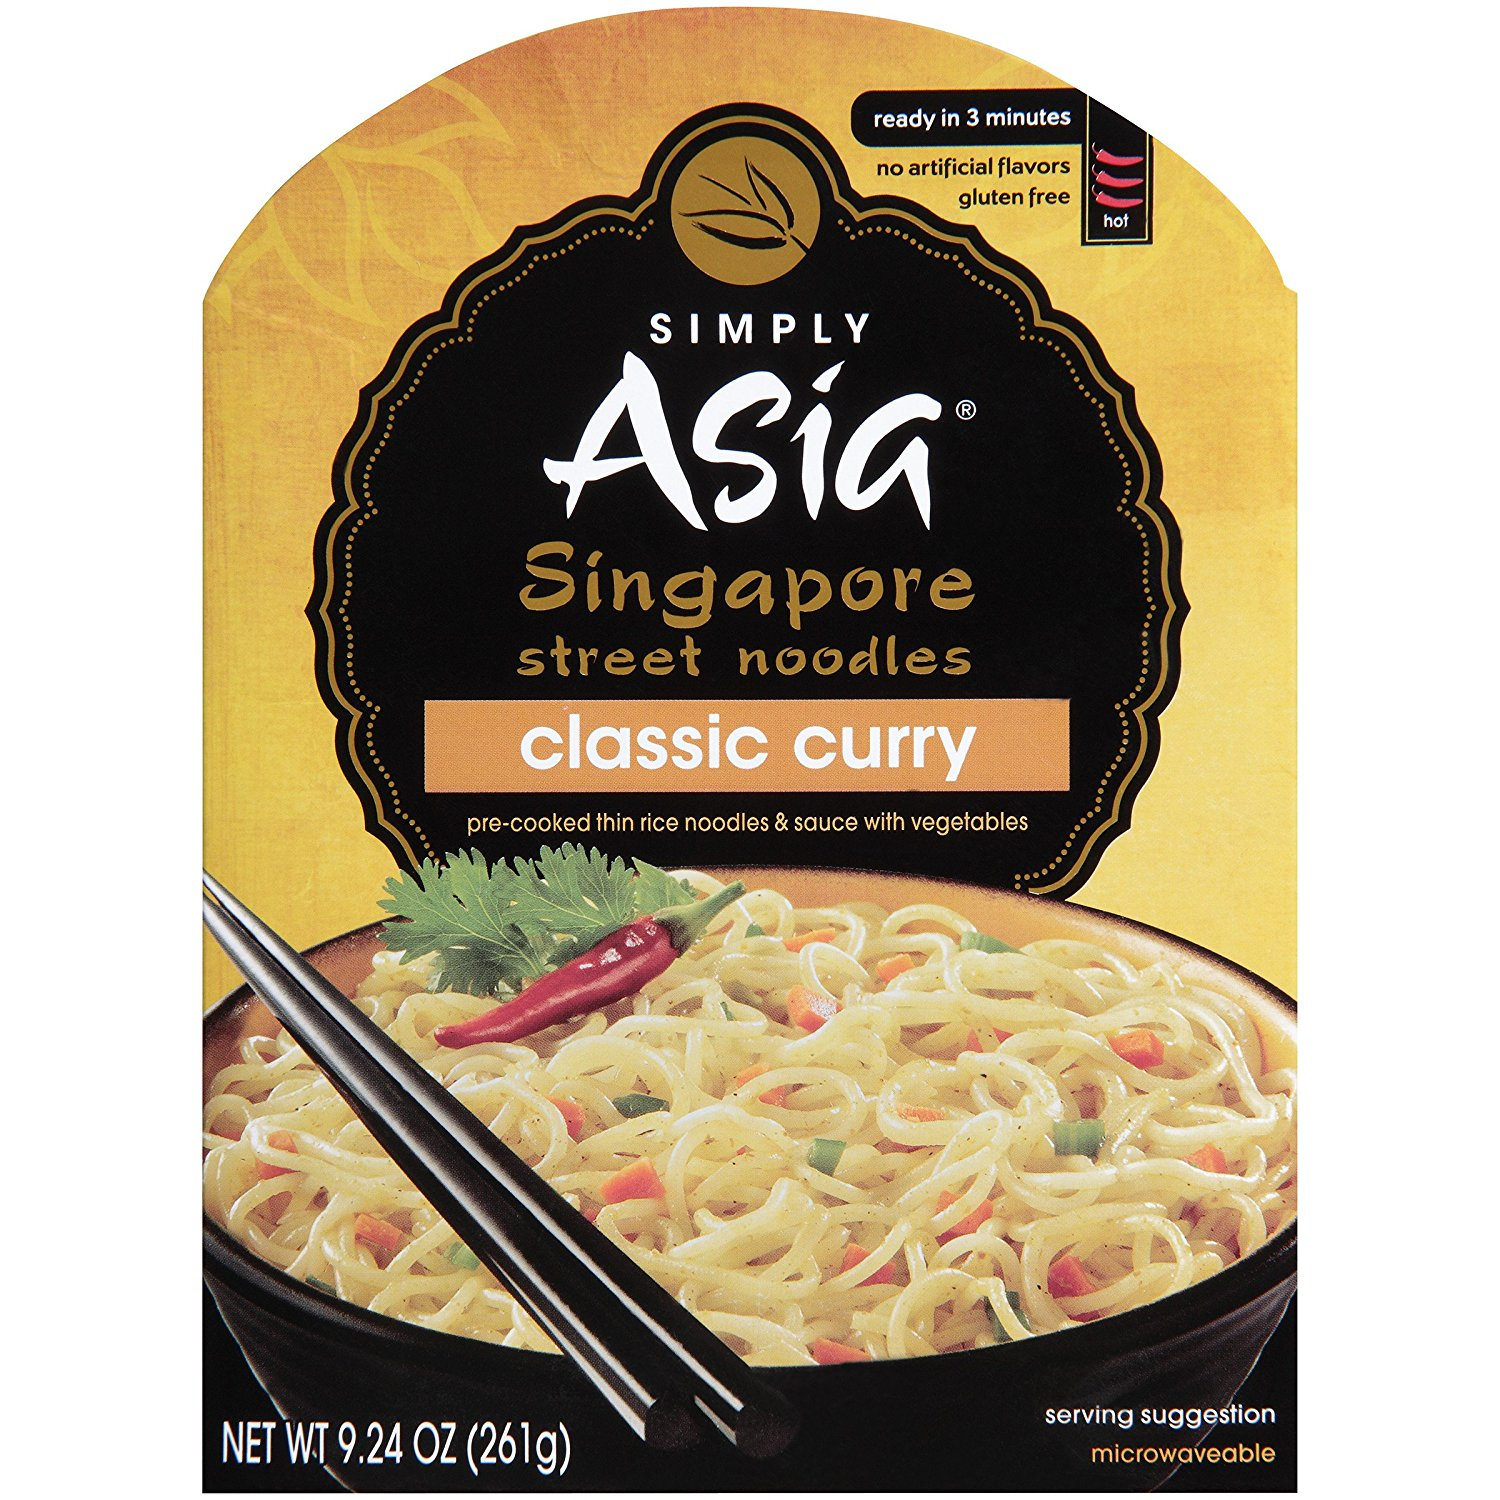 SIMPLY ASIA - SINGAPORE STREET NOODLES - GLUTEN FREE - CLASSIC CURRY - 9.24oz